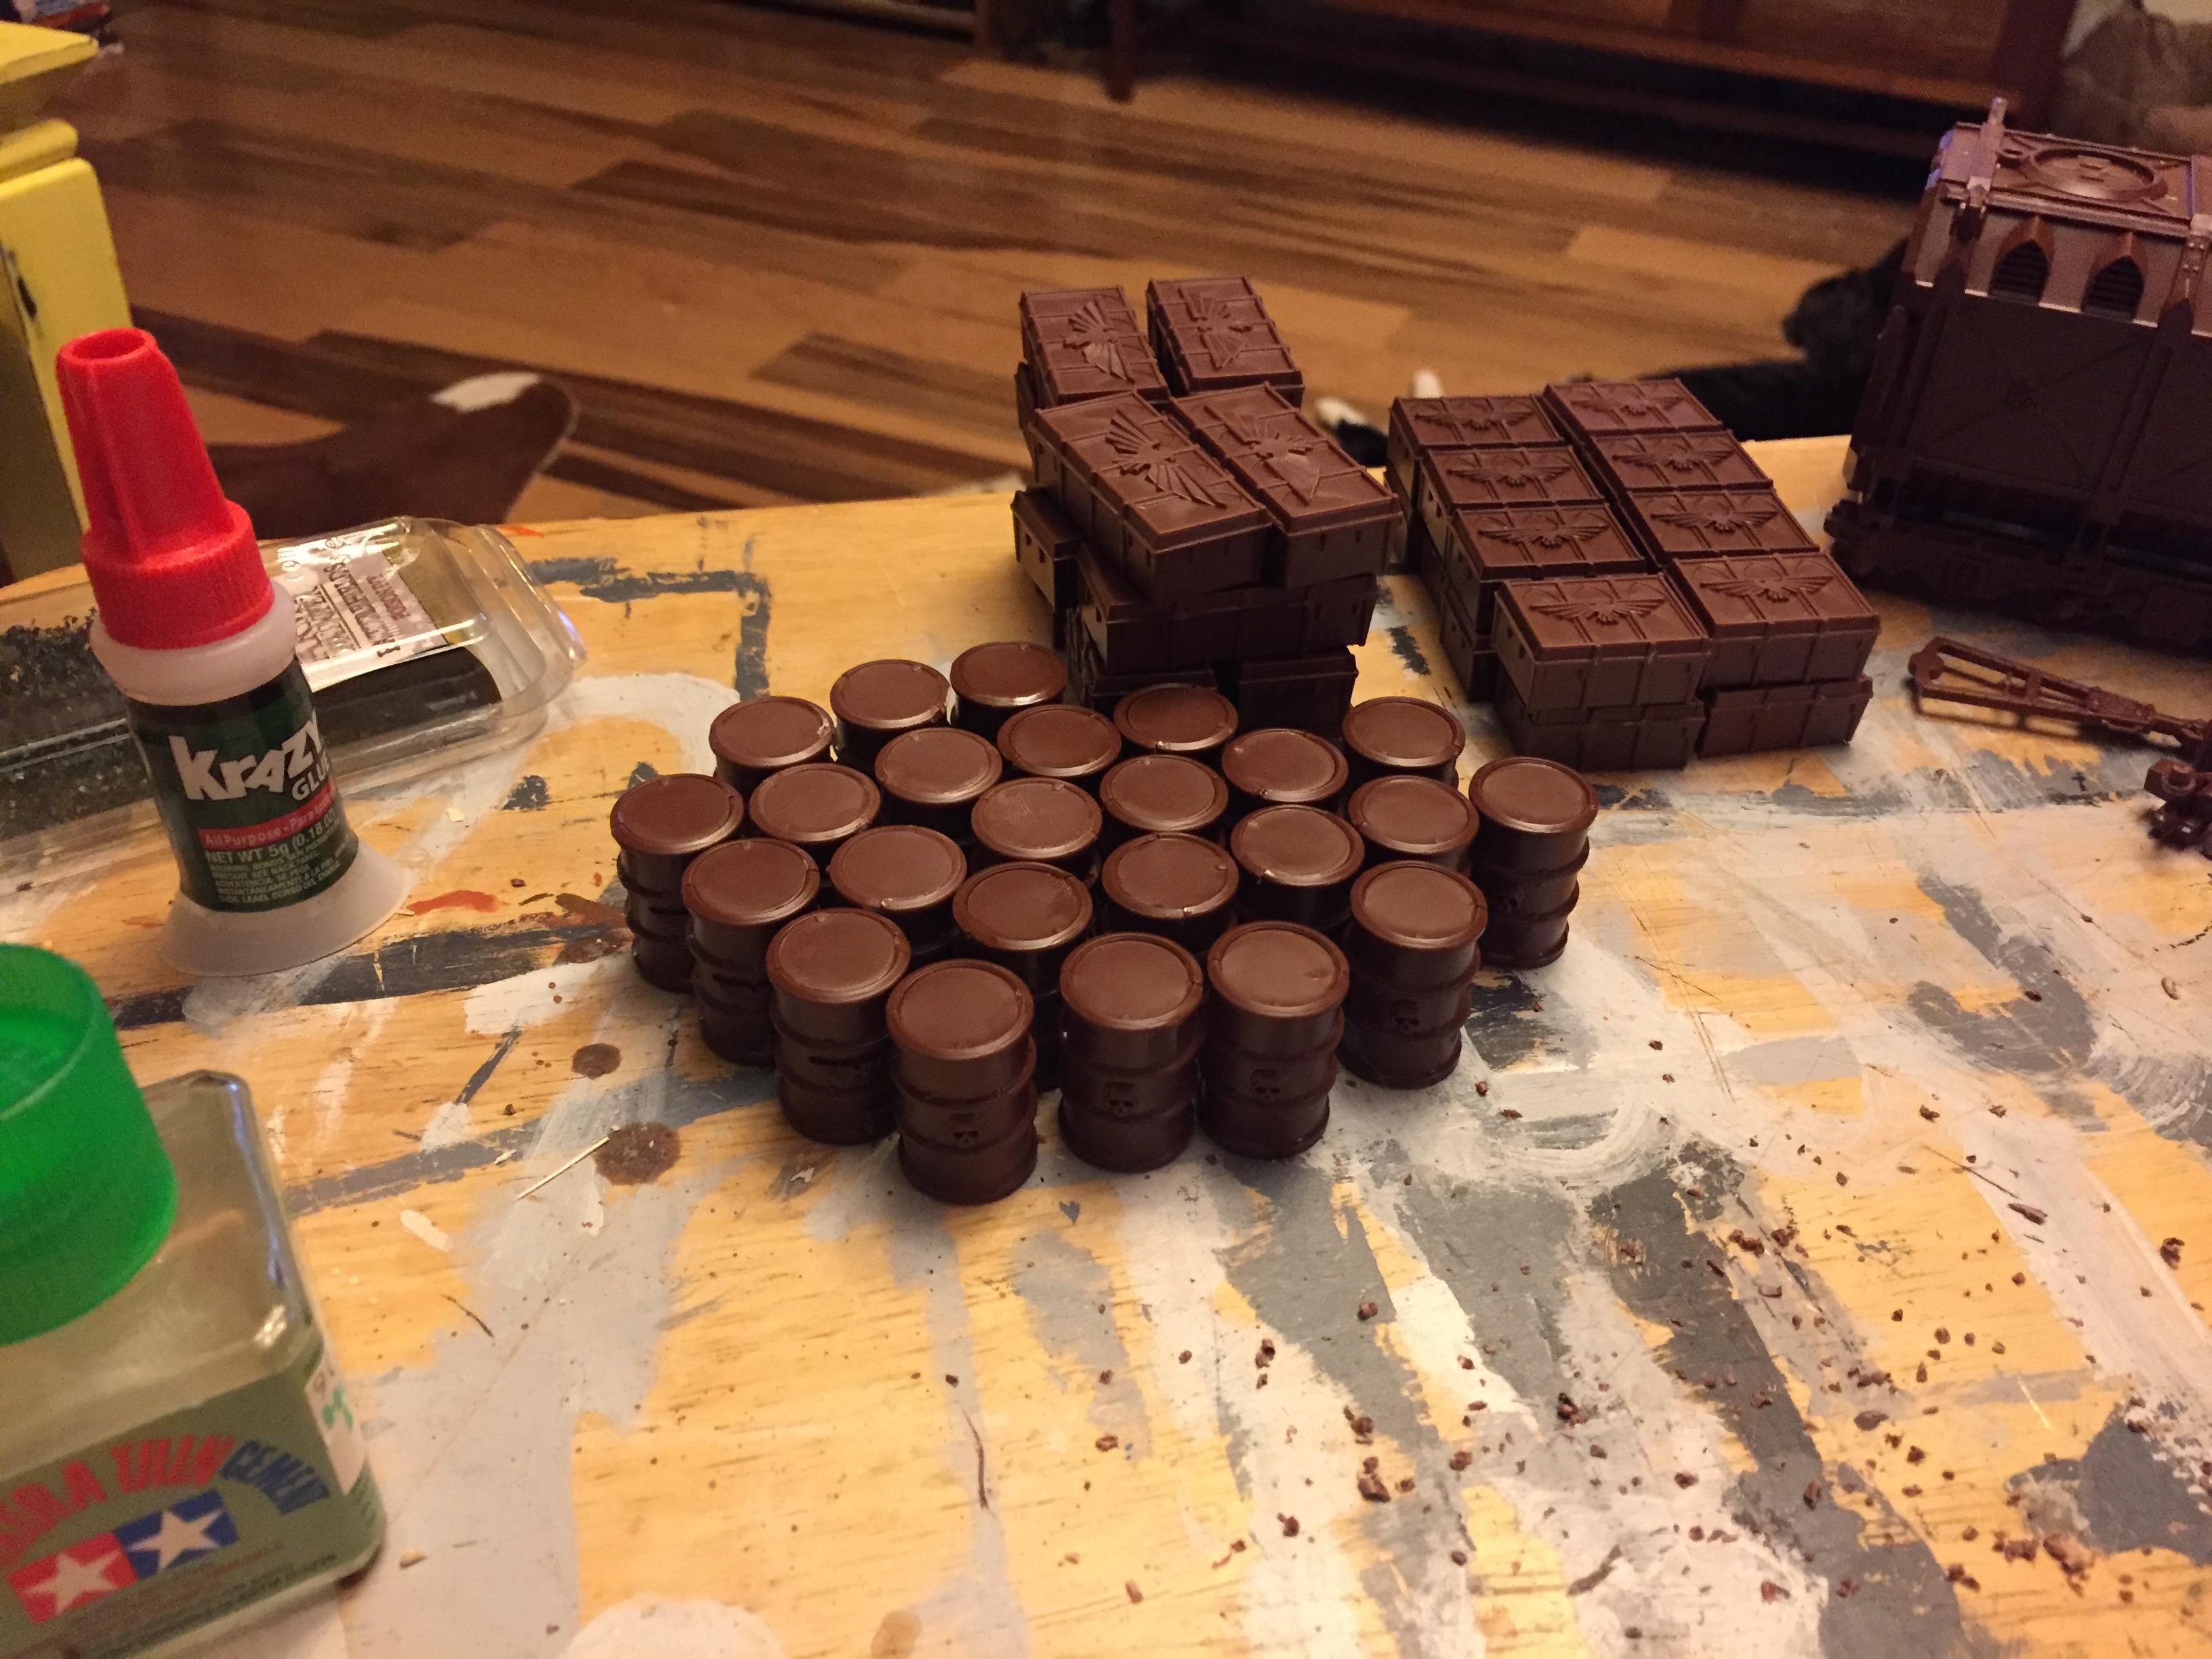 Barrels, Crates, Terrain, Warhammer 40,000, Work In Progress